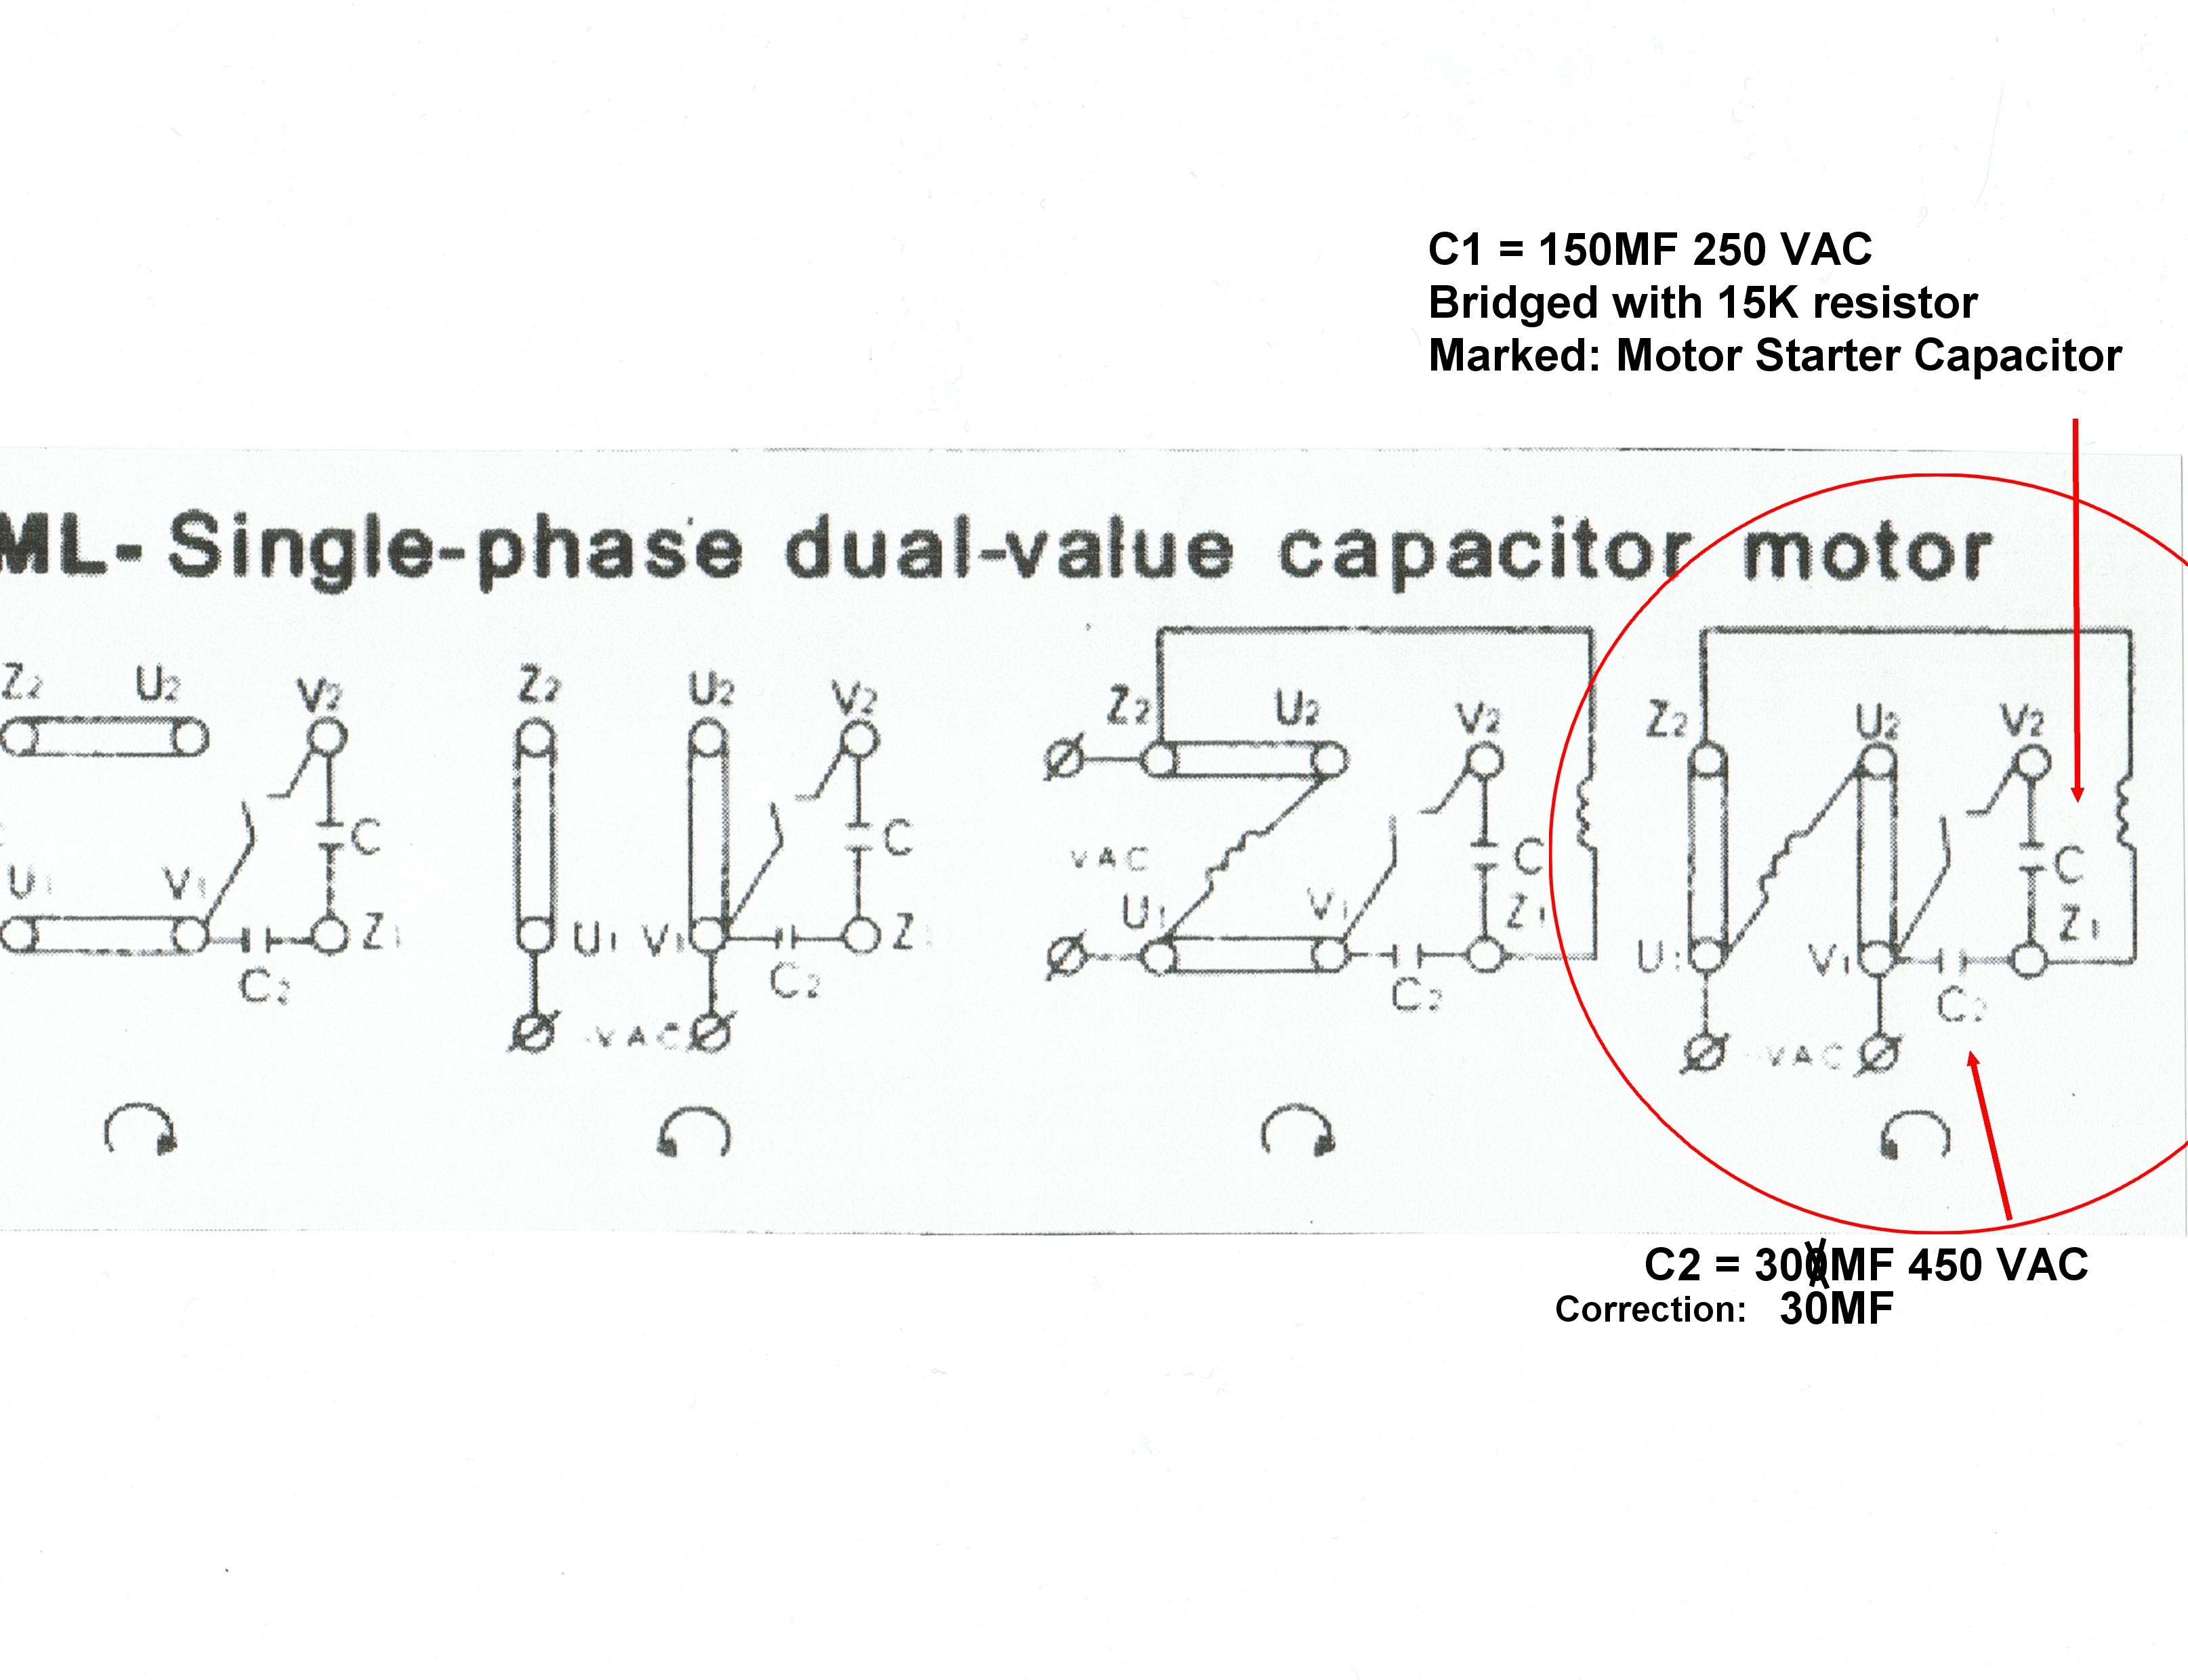 single phase 220 volt wiring diagram 2003 mitsubishi eclipse gs radio induction motor schematic get free image